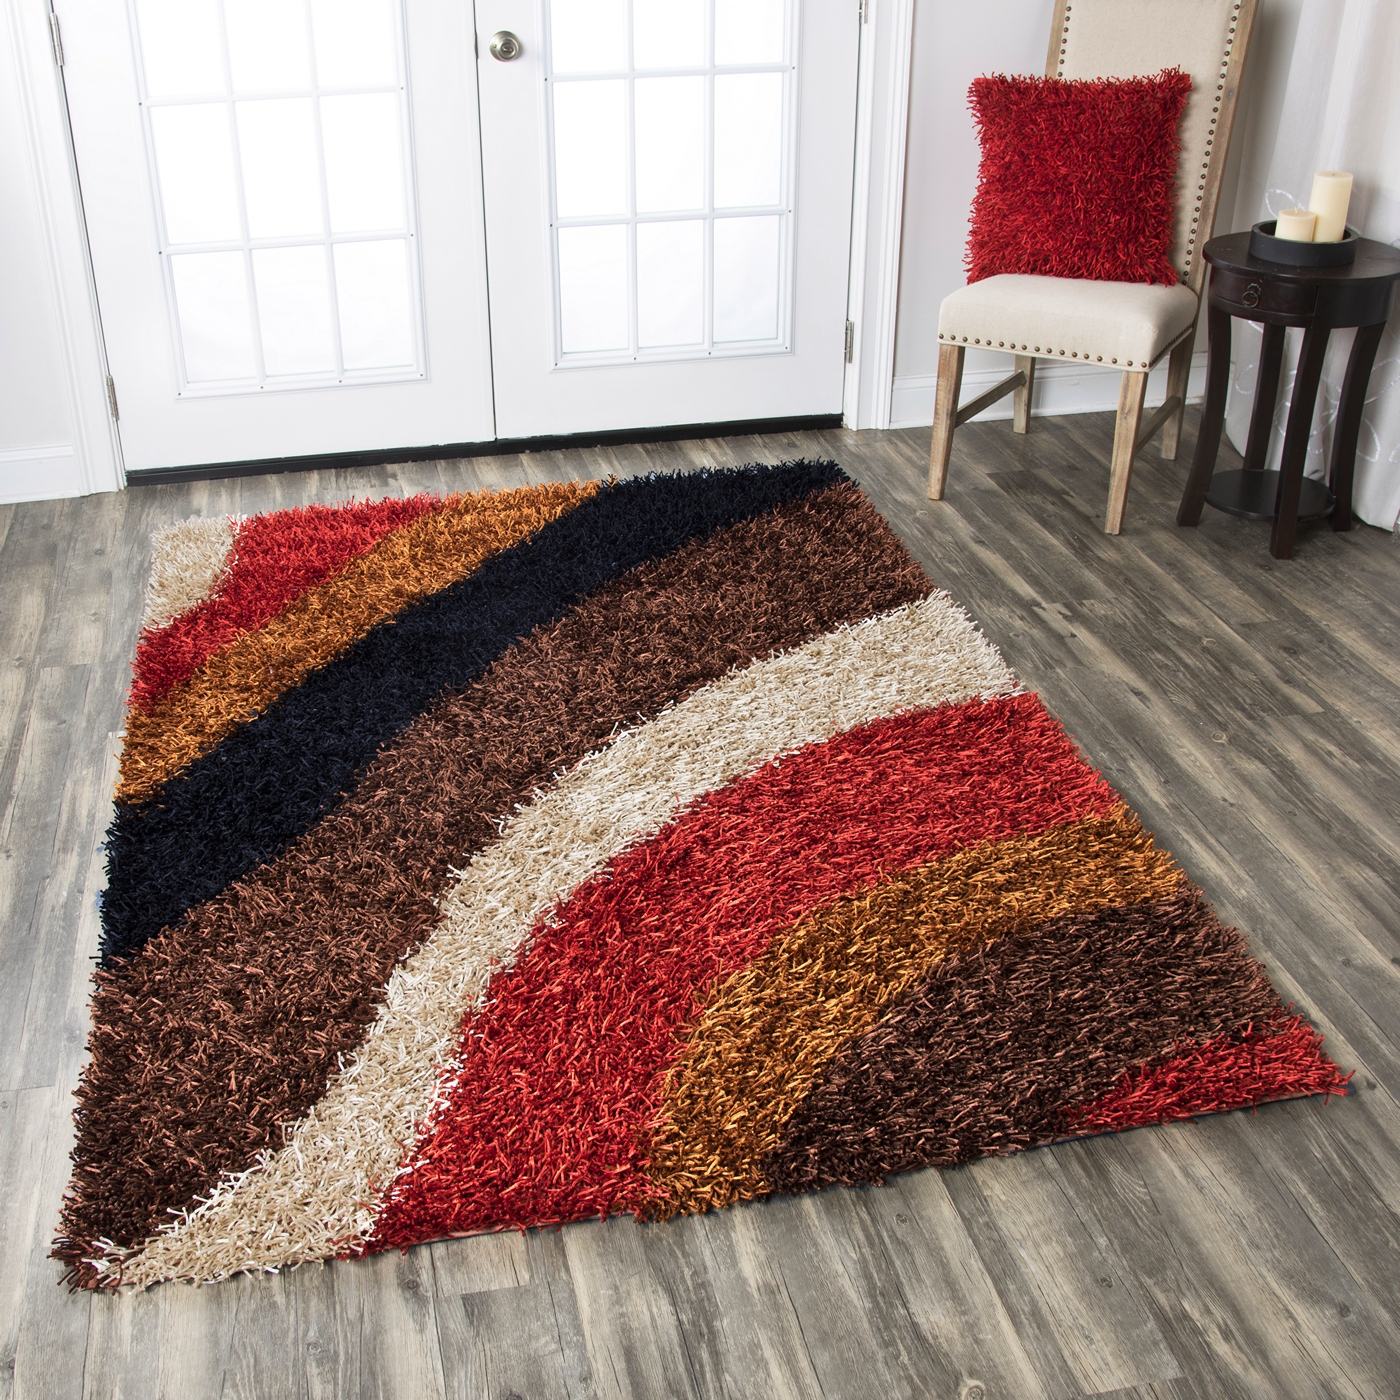 Kempton Ultra Plush Striped Area Rug In Red Brown Khaki